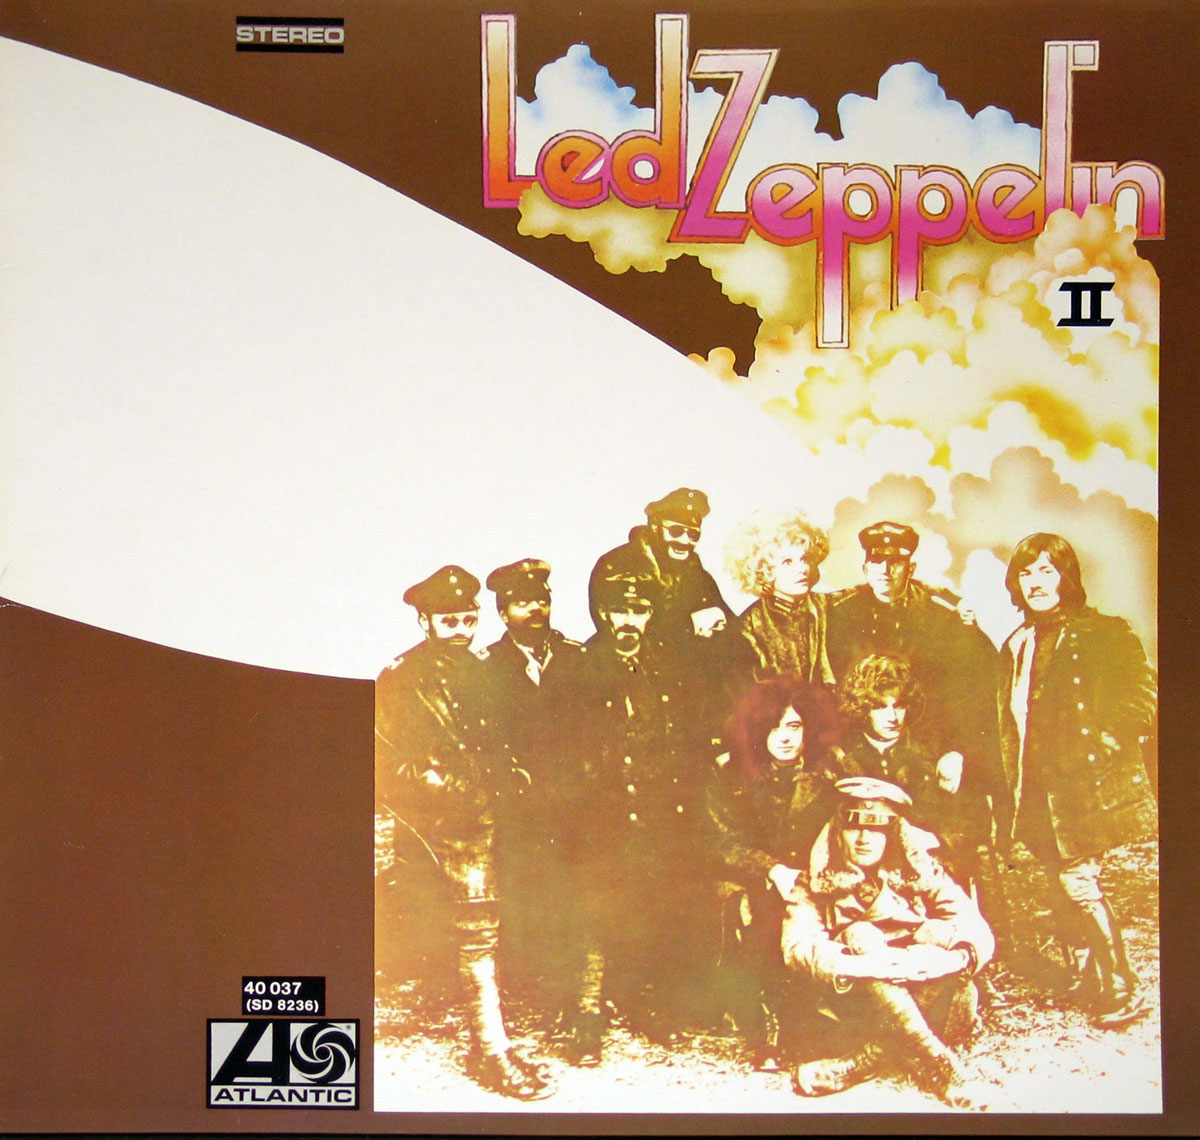 High Resolution Photo of Led Zeppelin II LP